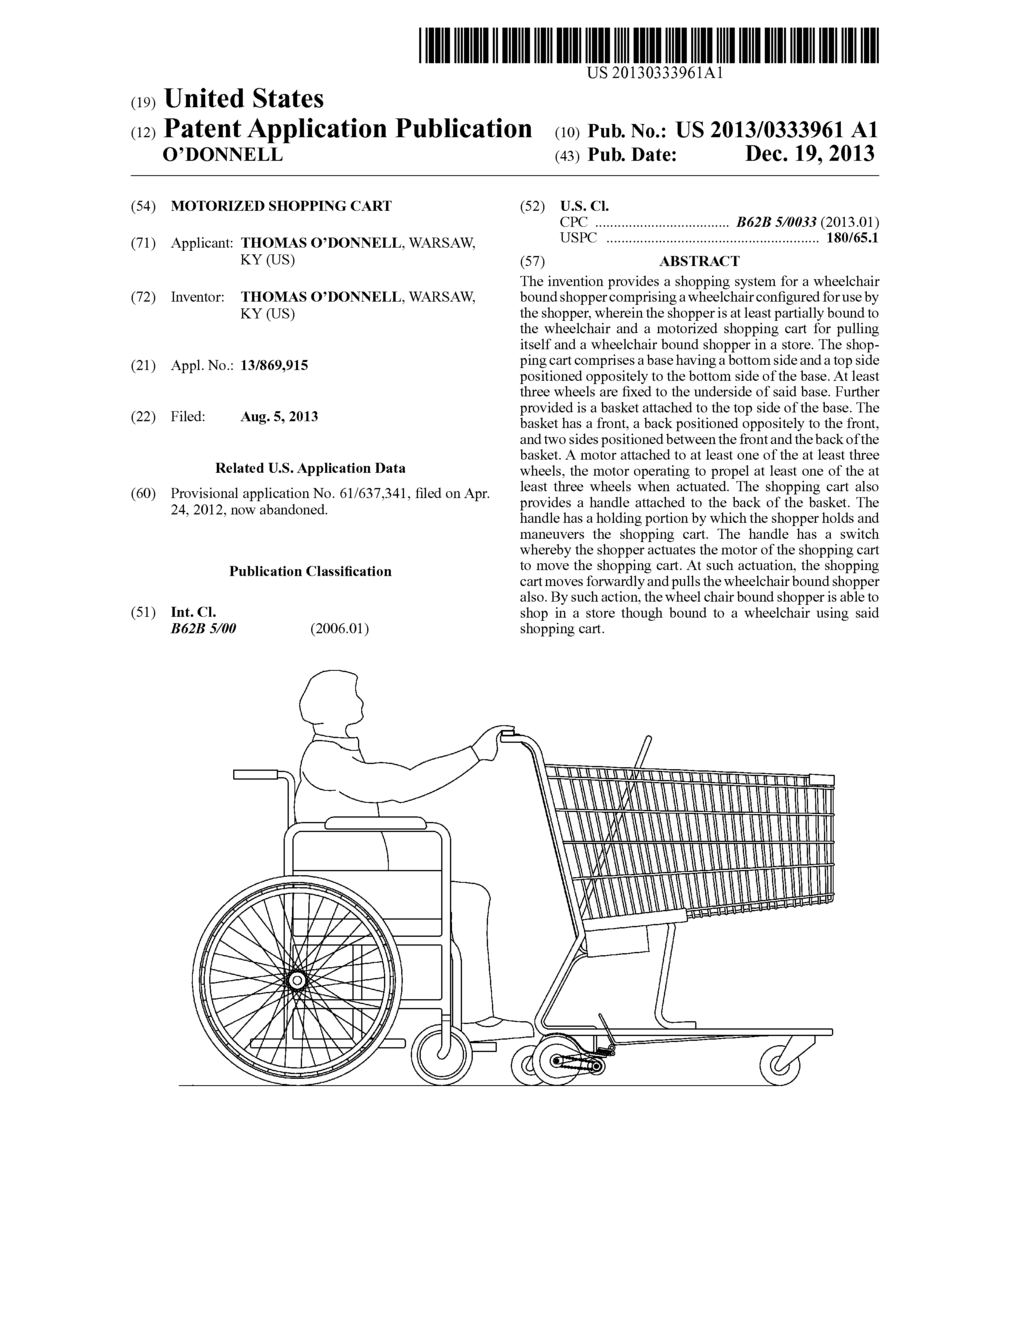 Marvelous Motorized Shopping Cart Diagram Schematic And Image 01 Wiring 101 Swasaxxcnl